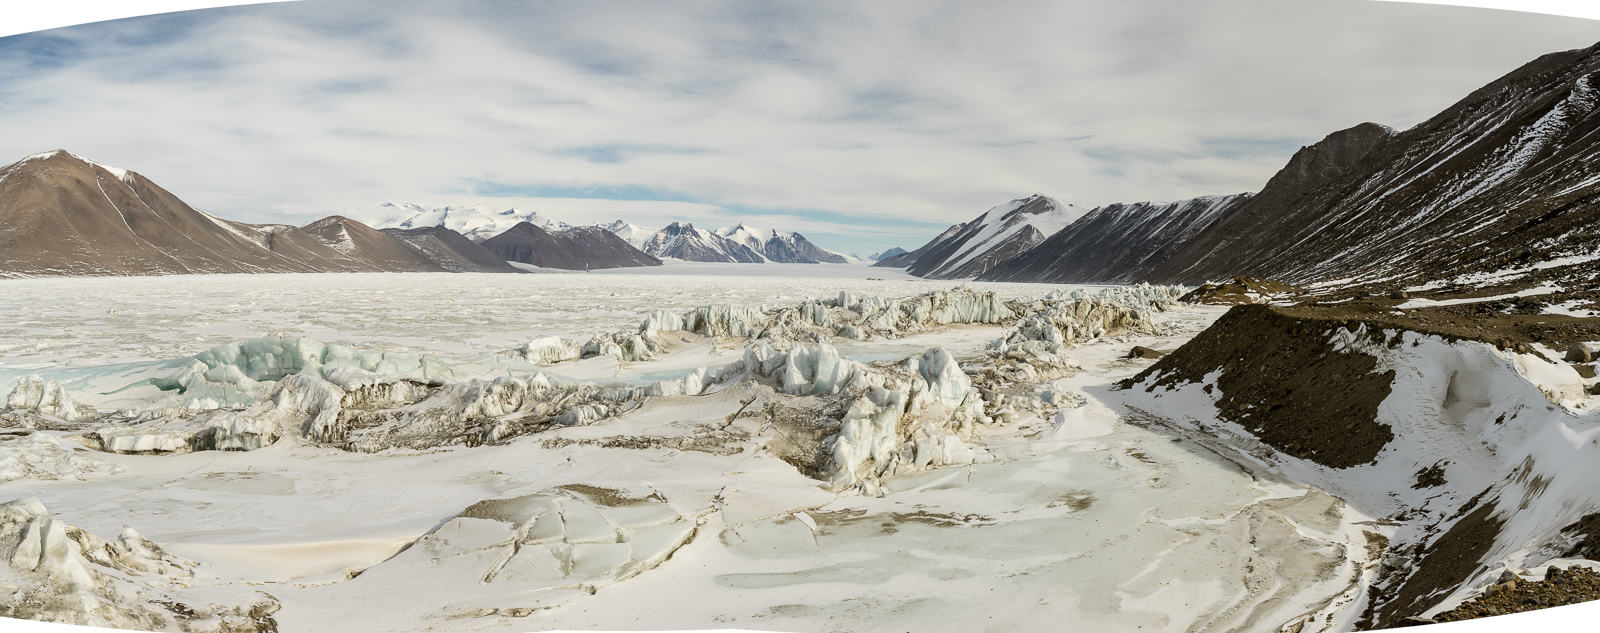 The view towards the Ferrar Glacier, this is a close as we could get to the glacier because of the pressure and extremely rough sea ice.